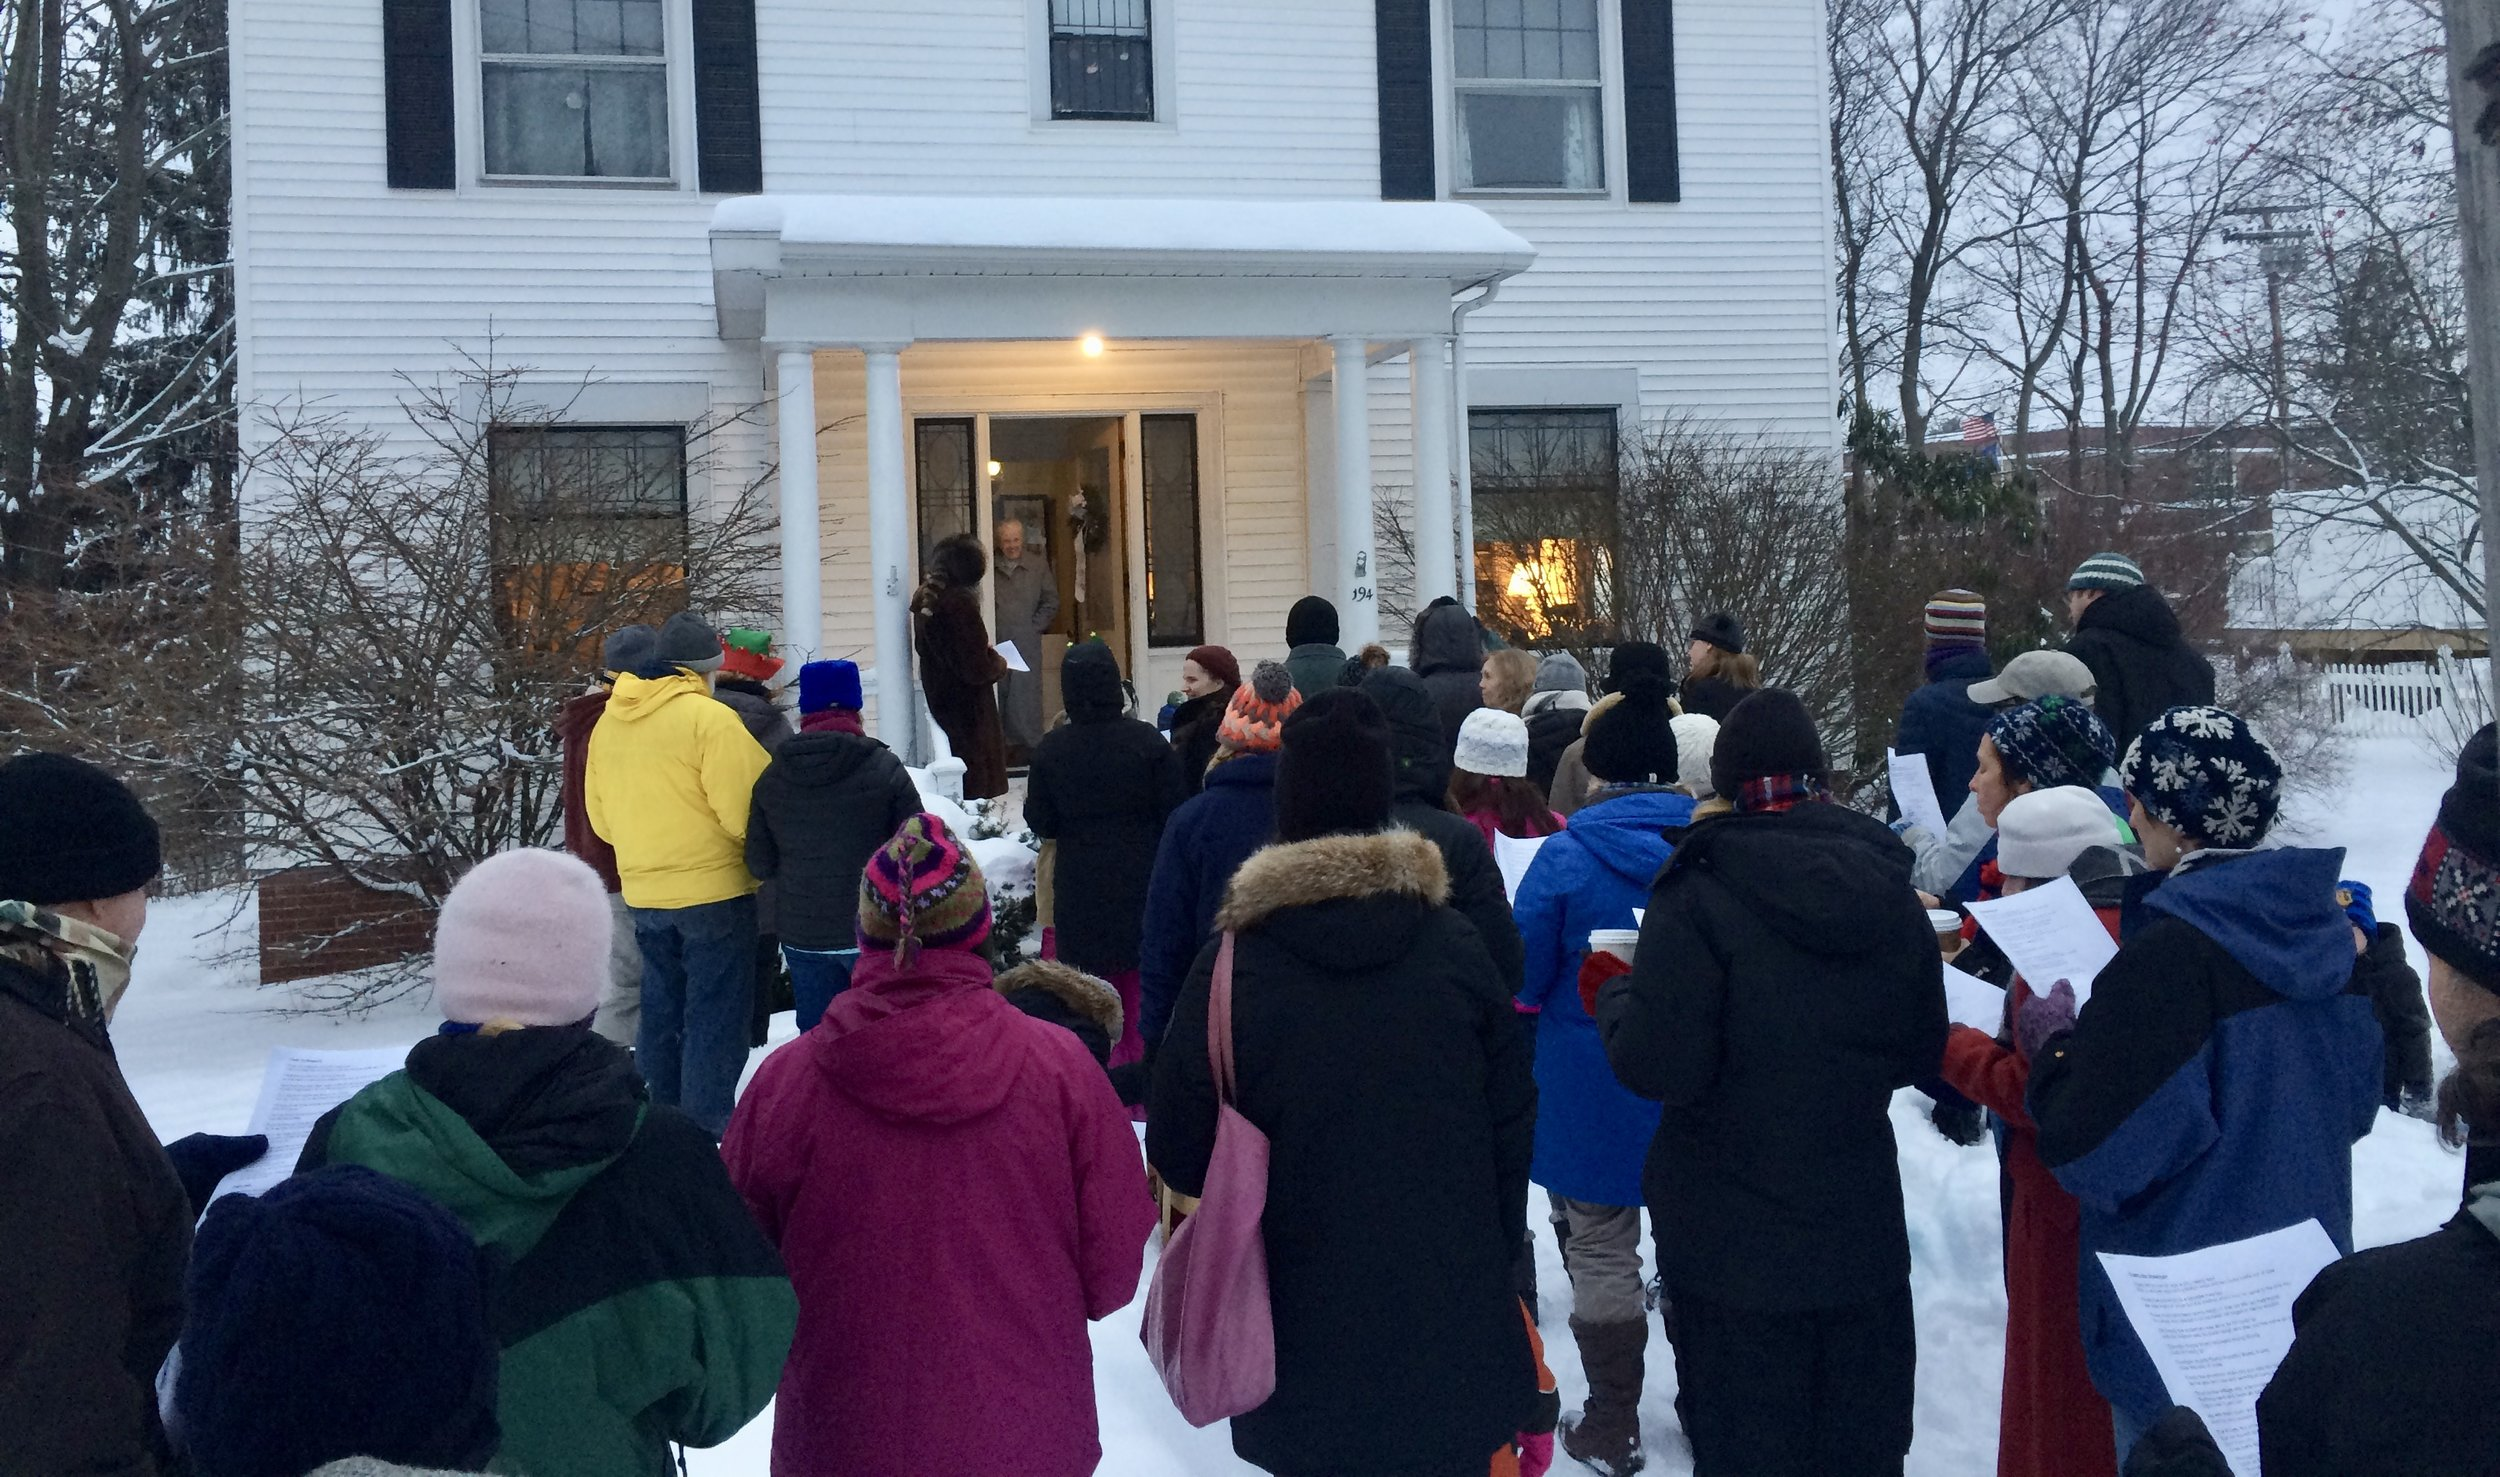 Neighborhood Holiday Caroling - What better way to ring in the holidays than walking & singing for neighbors!